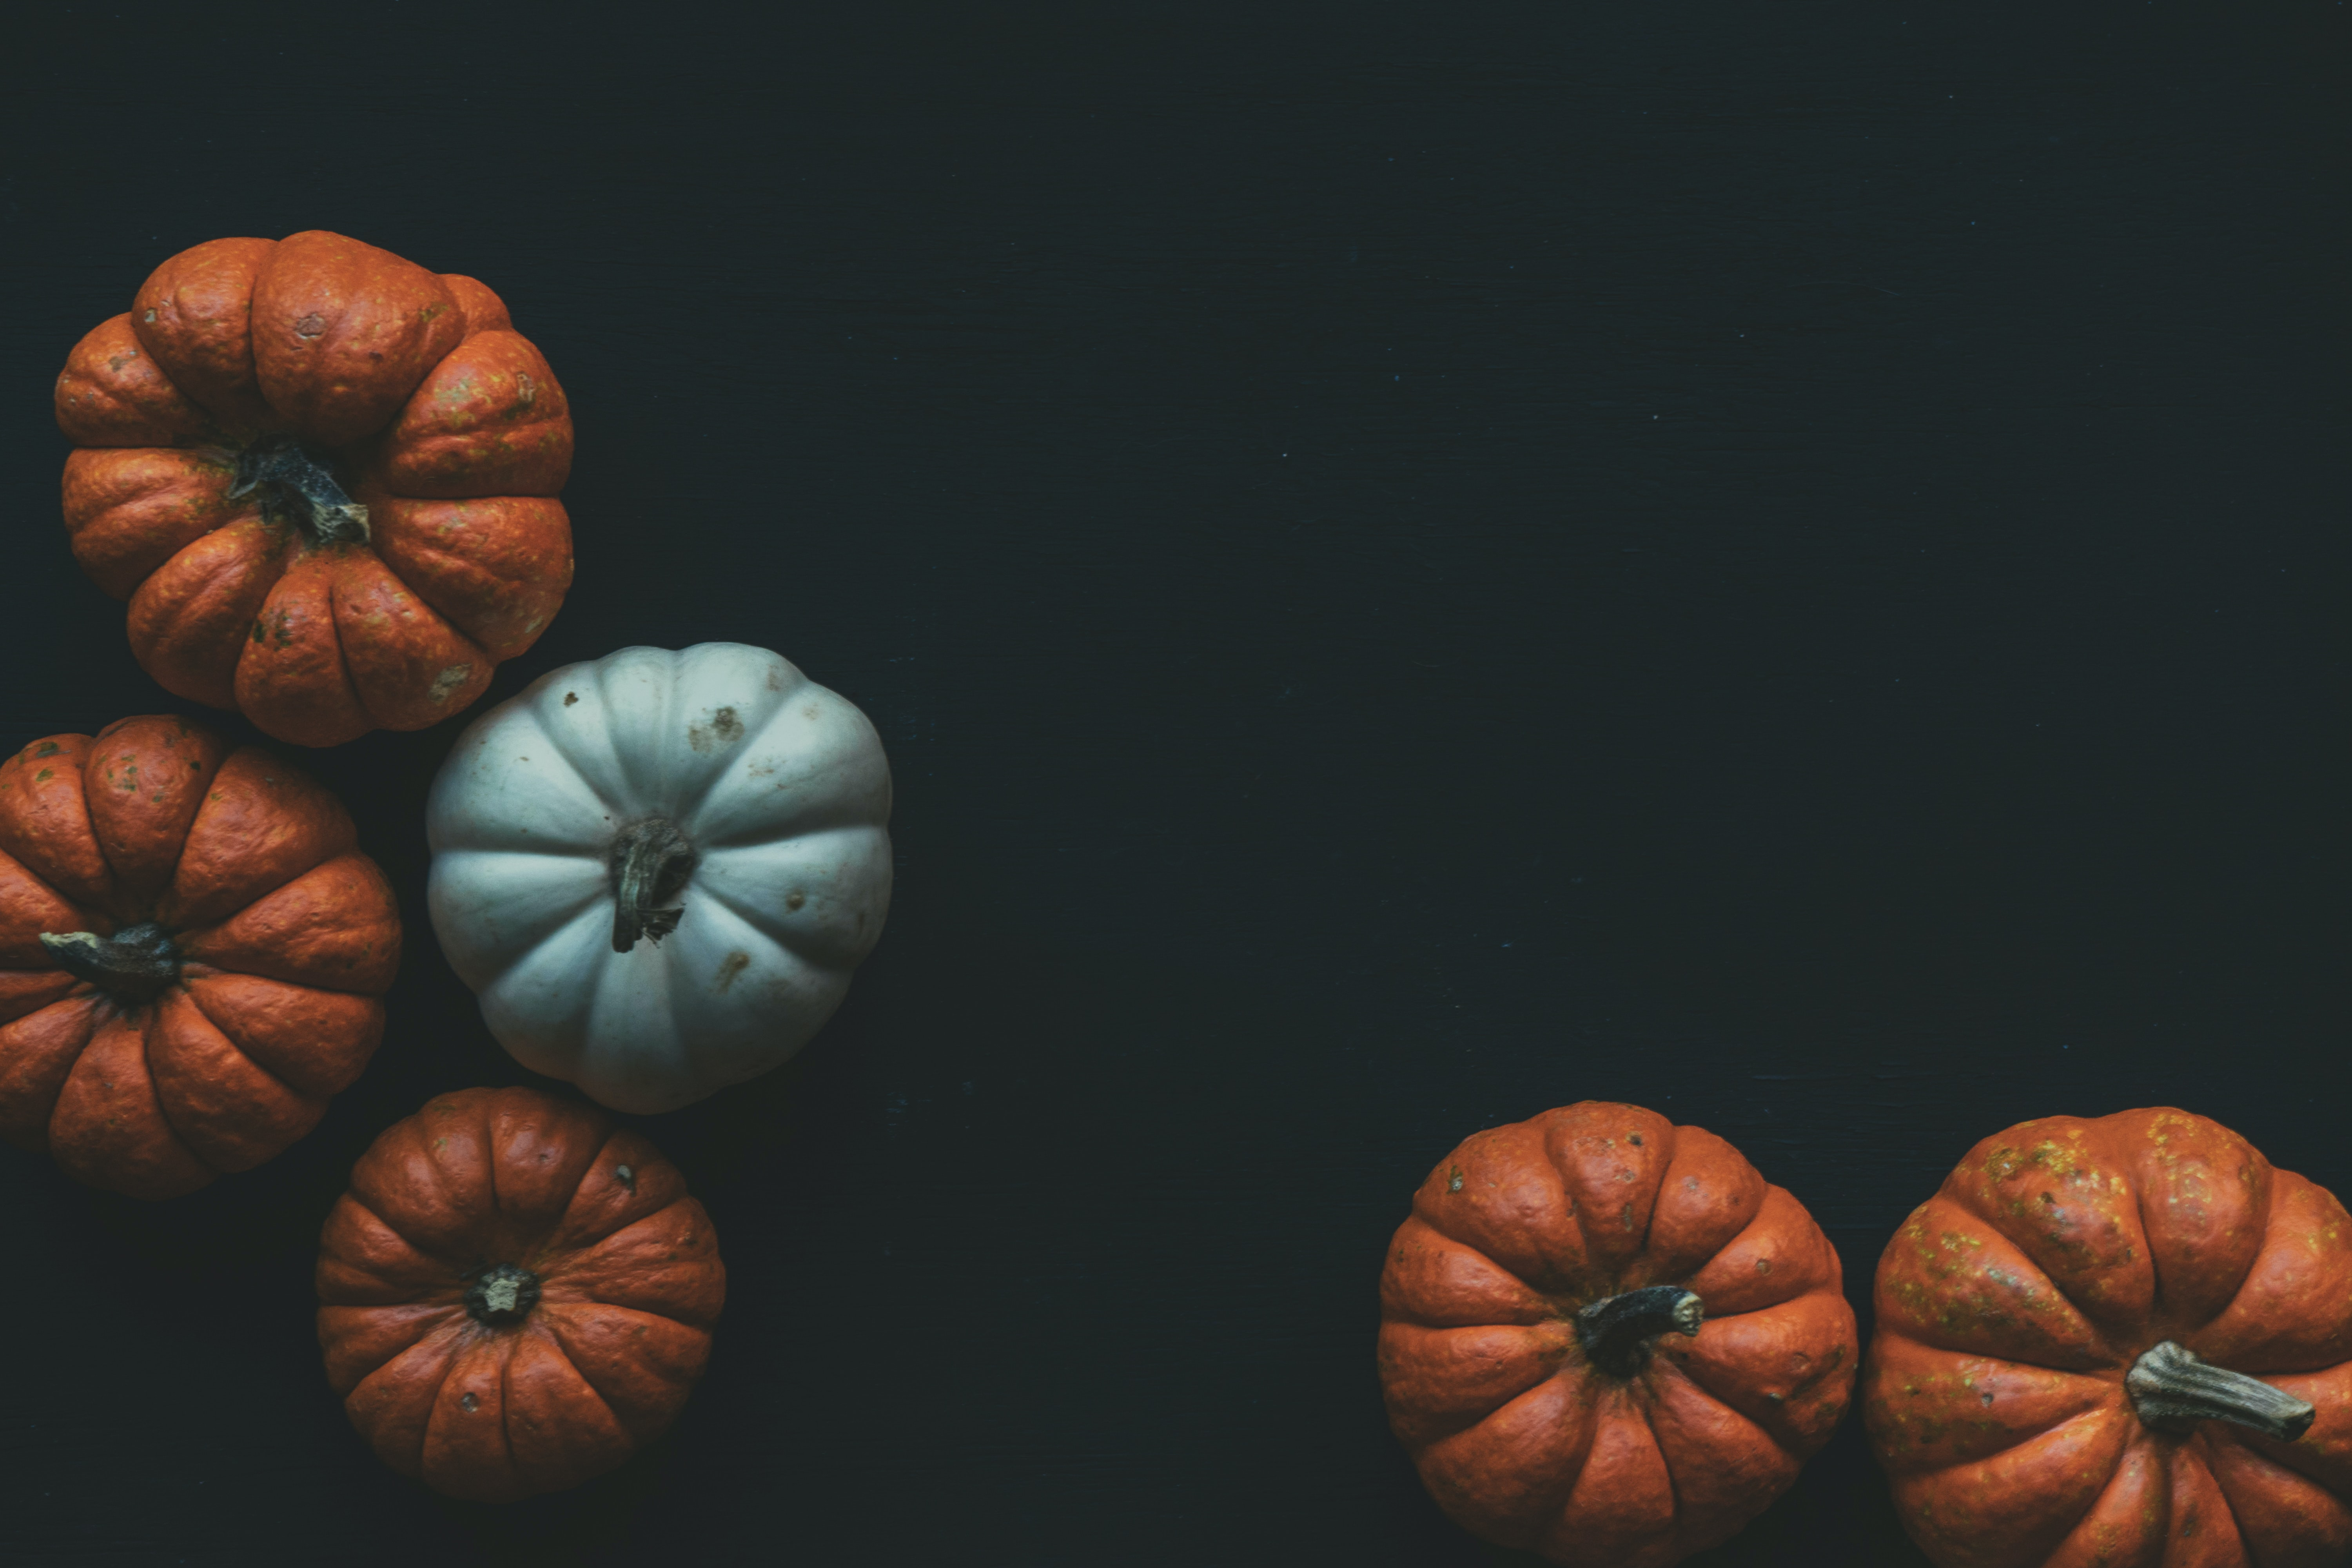 An assortment of pumpkins with a dark background.